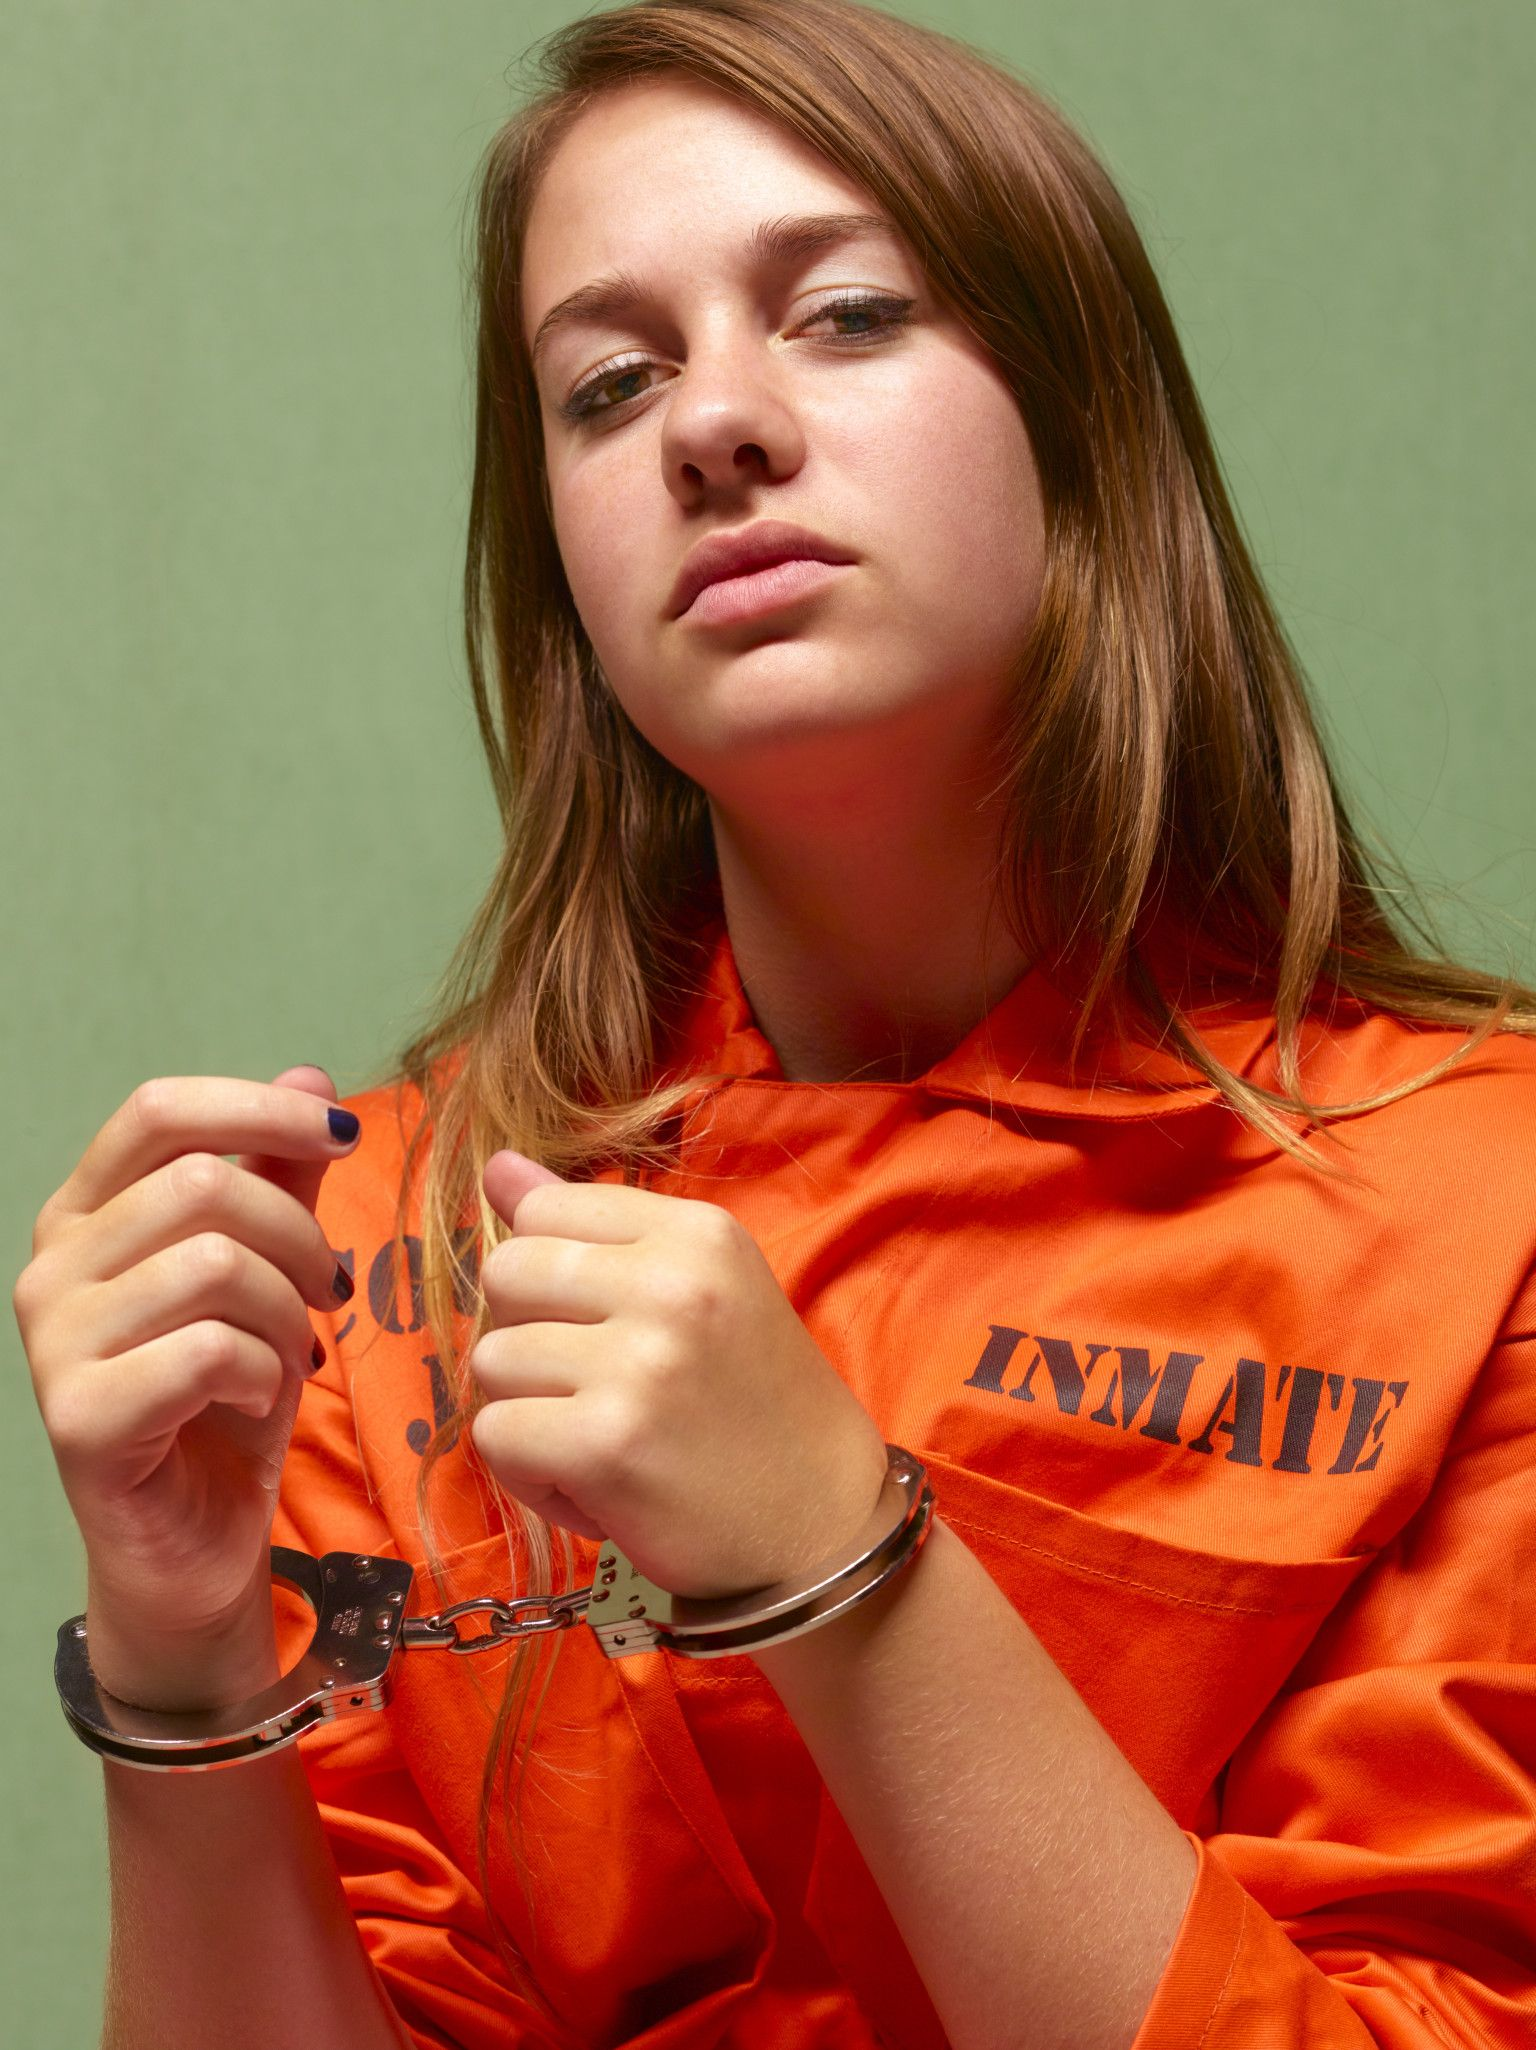 Female inmates photo 32